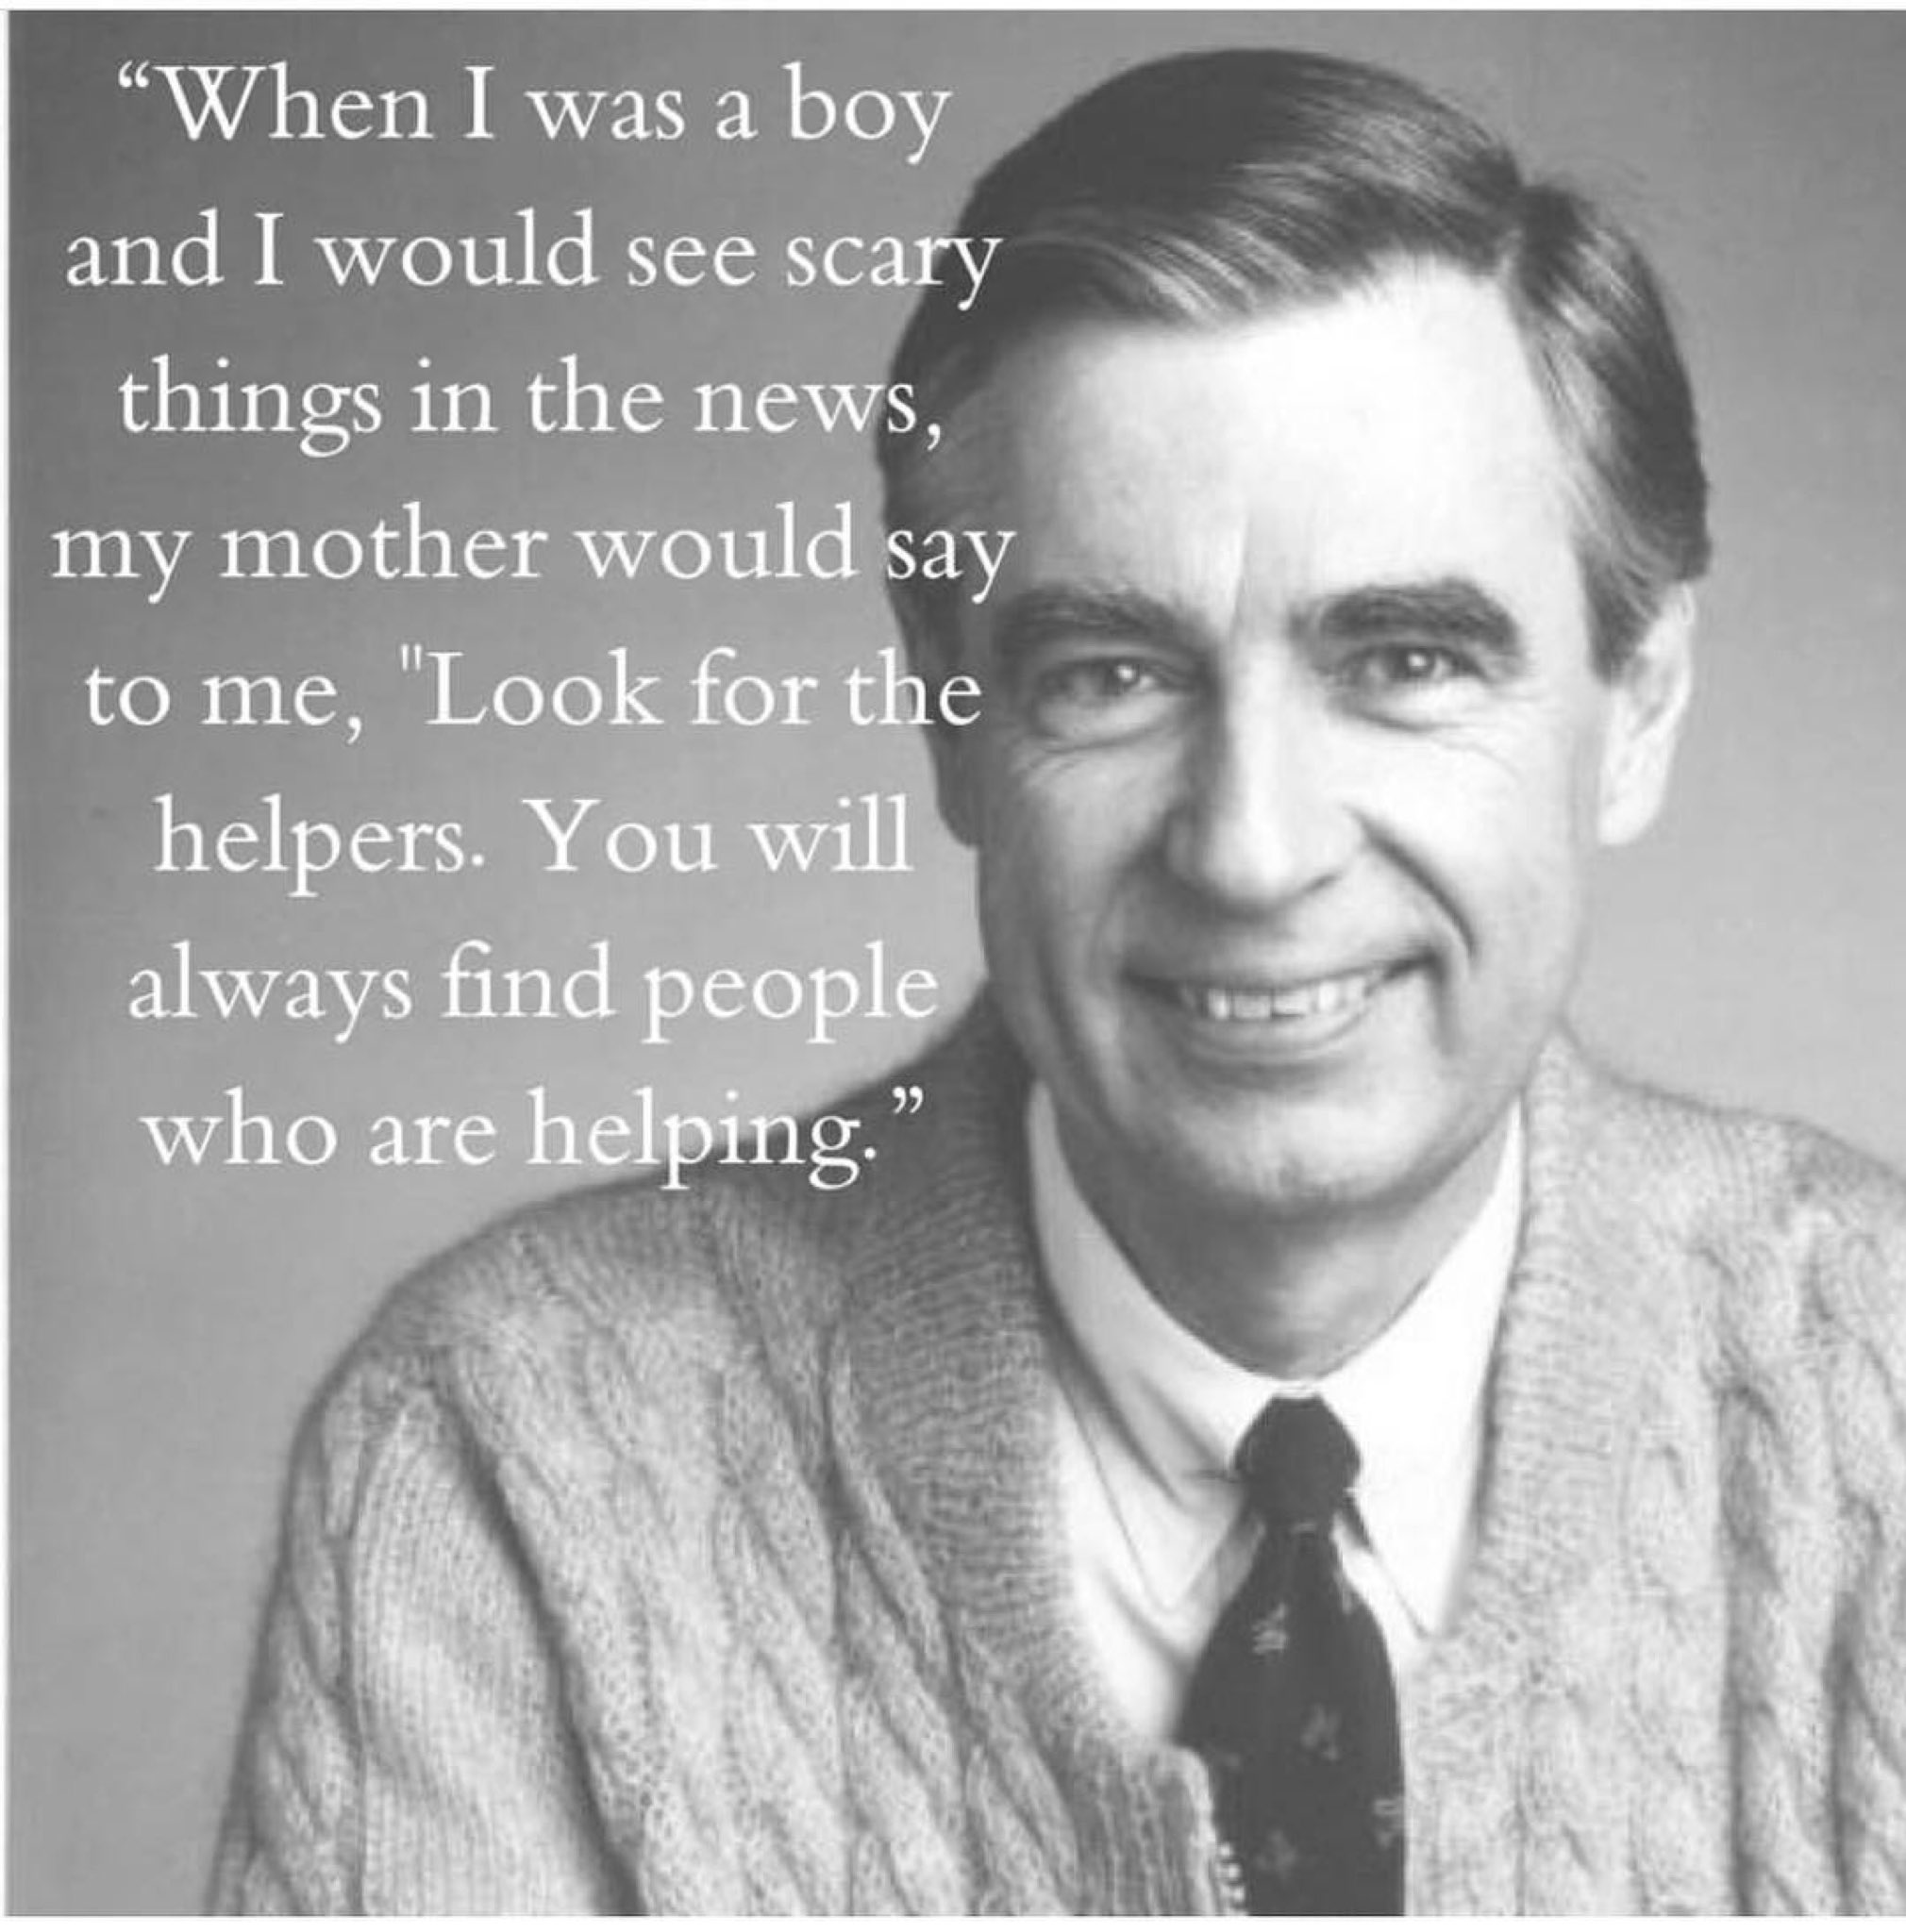 Thank you, Mr. Rogers and Mr. Rogers mom. ❤️❤️ https://t.co/1pHZrwZKnO